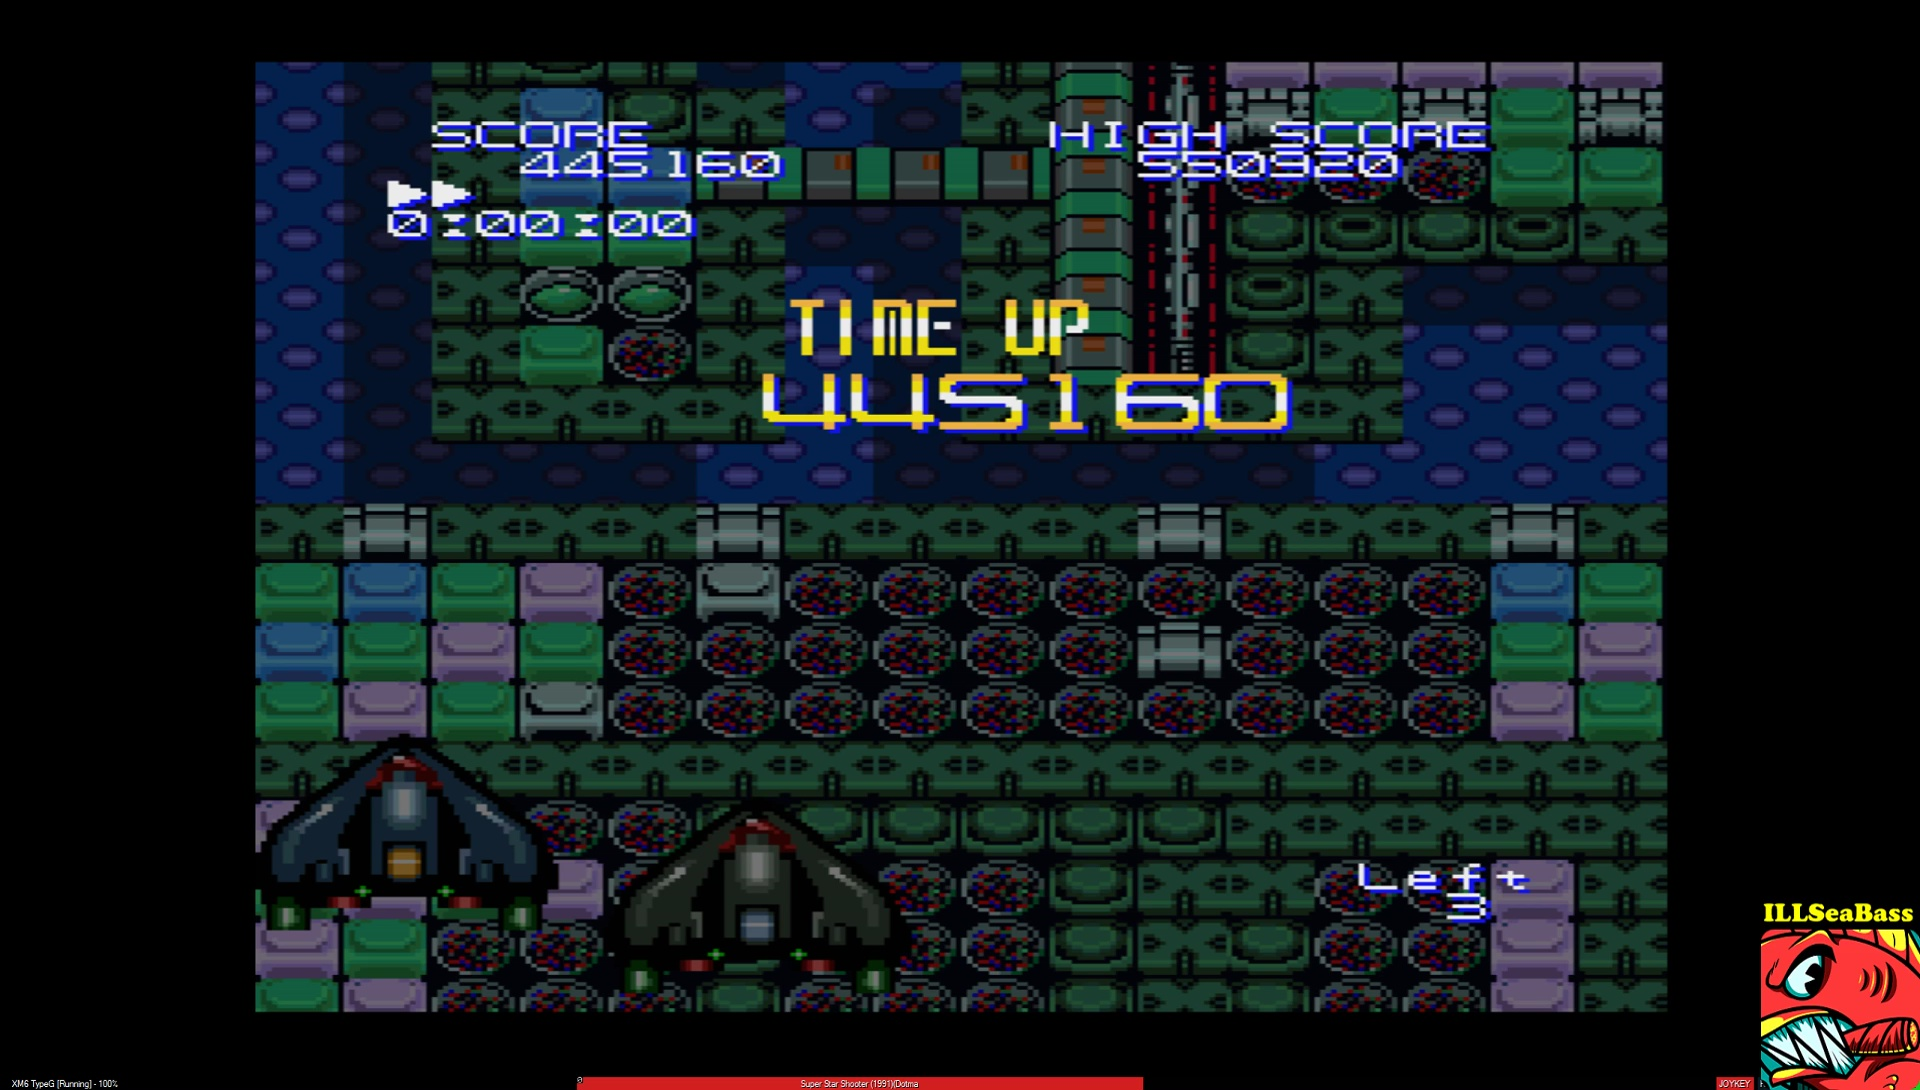 ILLSeaBass: Super Star Shooter: Version 1.00 [2 Minutes Game] (Sharp X68000 Emulated) 445,160 points on 2017-03-01 23:36:16